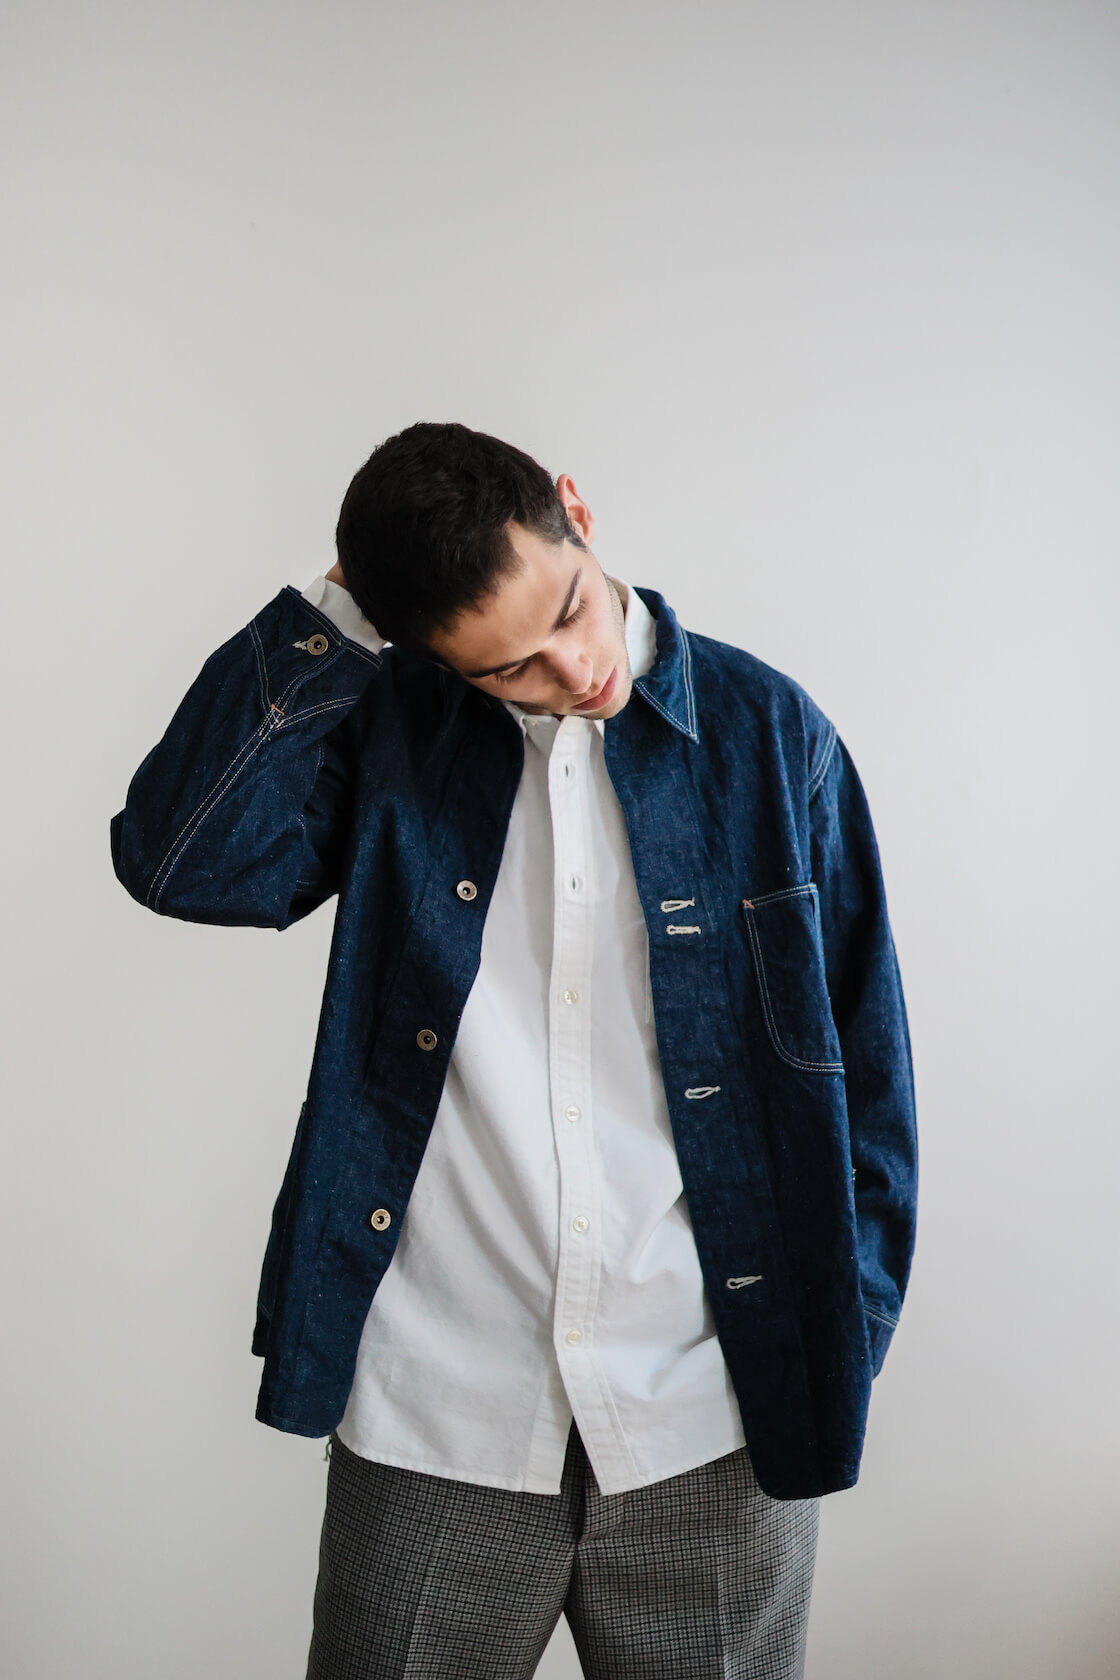 orslow 40s coverall, marni trousers, jjjjound x dr. martens archie II shoes and orslow workshirt on body